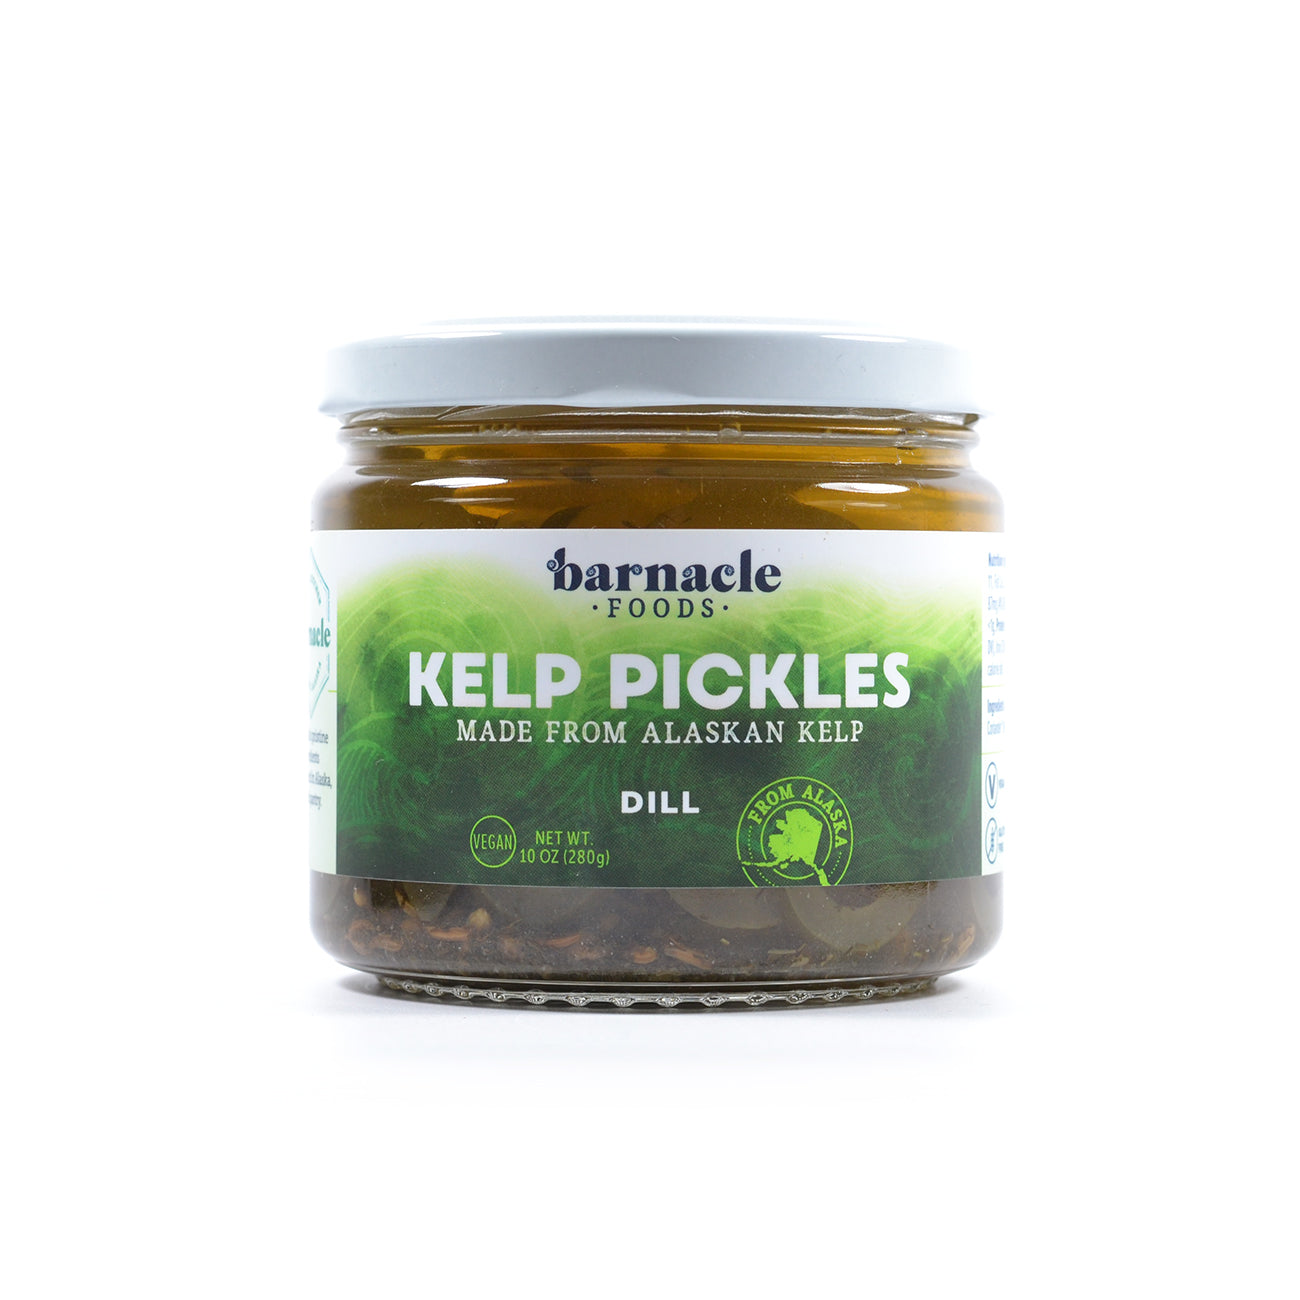 Dill Kelp Pickles